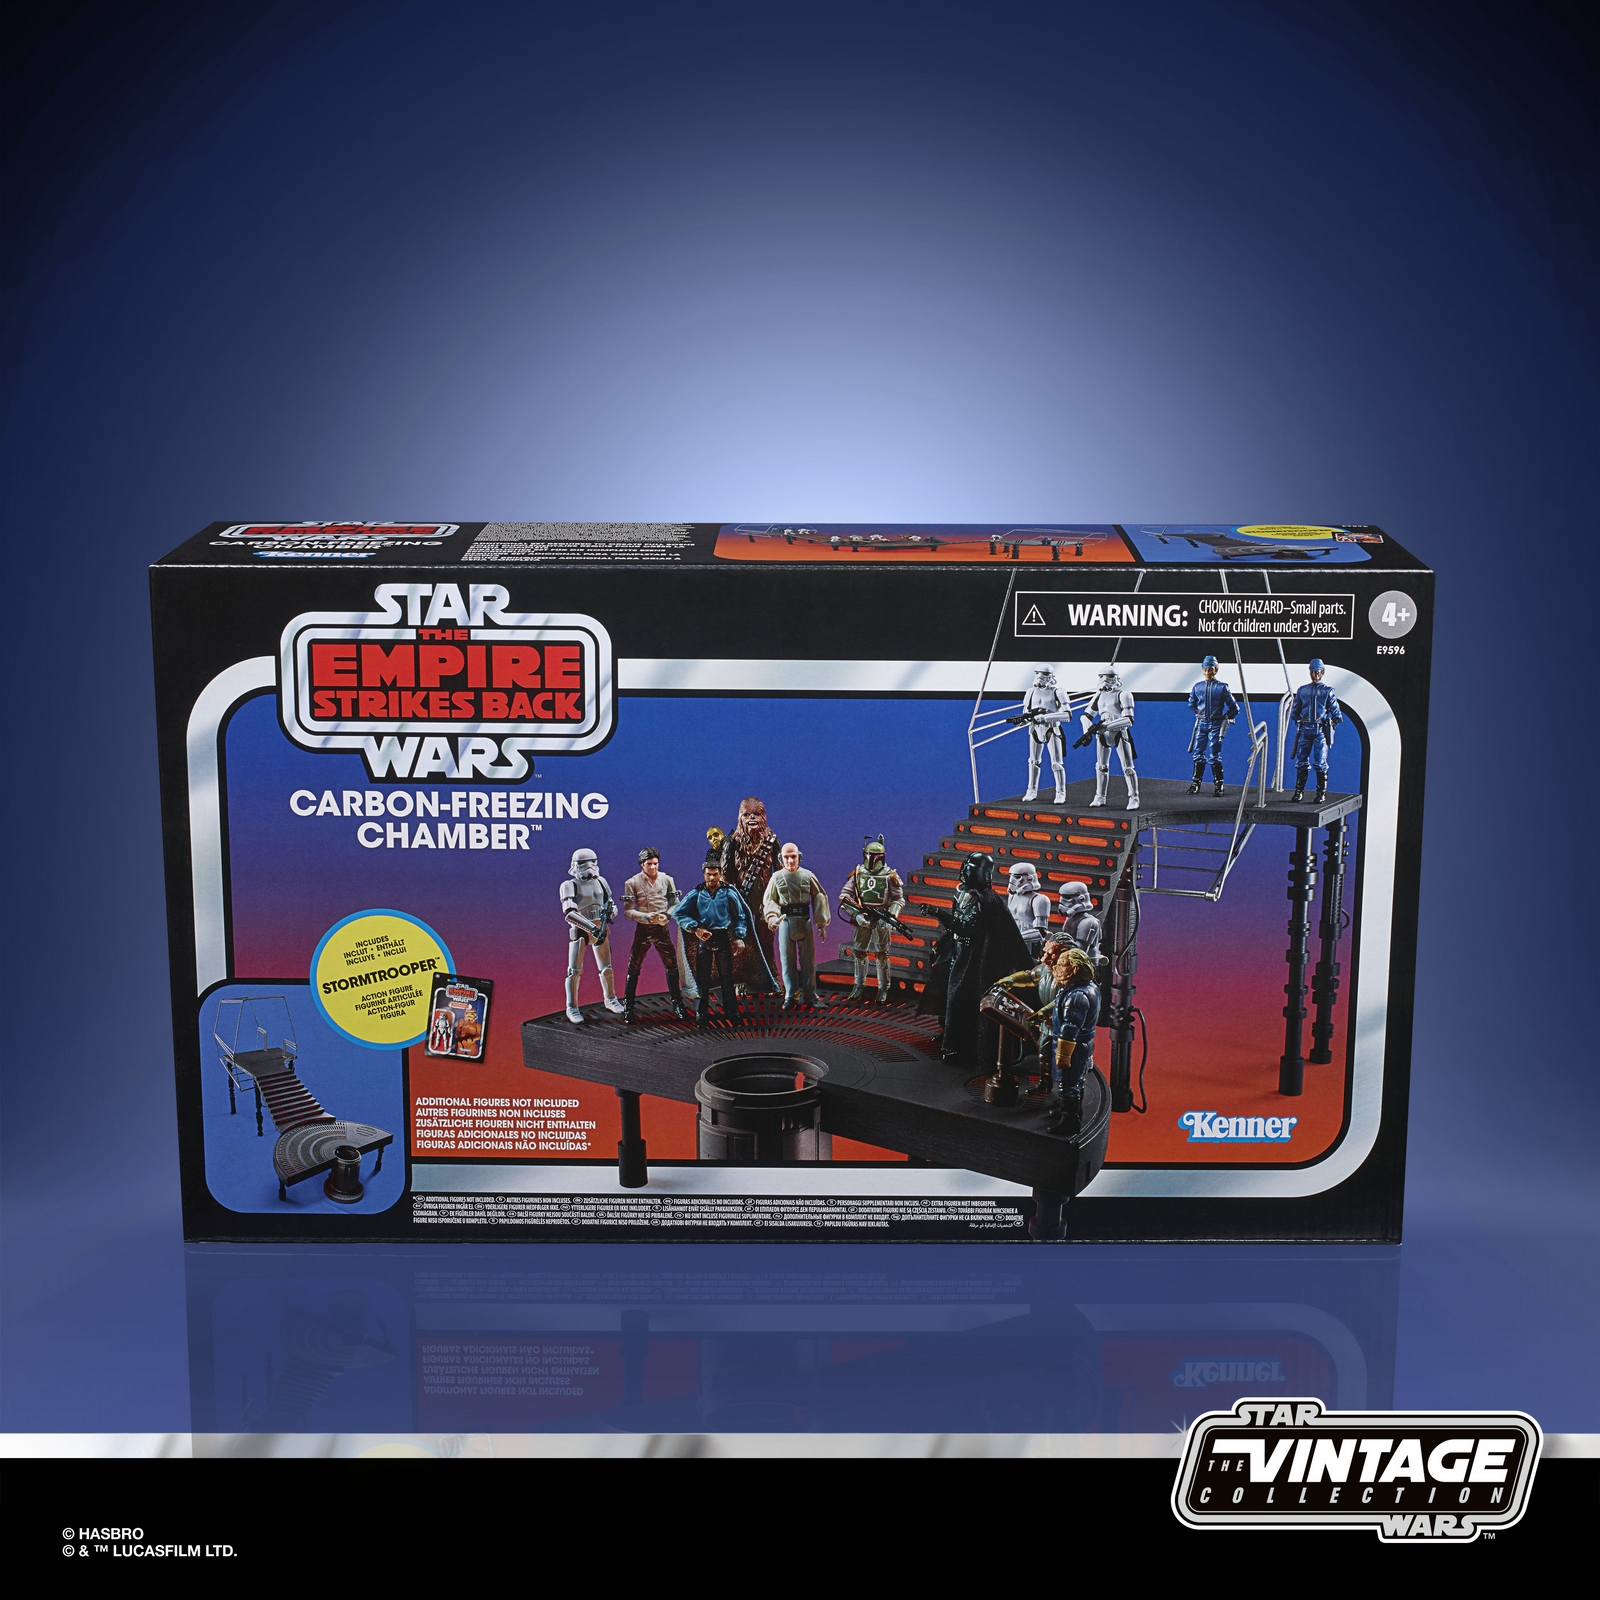 star_wars_the_vintage_collection_carbon-freezing_chamber_playset_in_pck_1.jpg